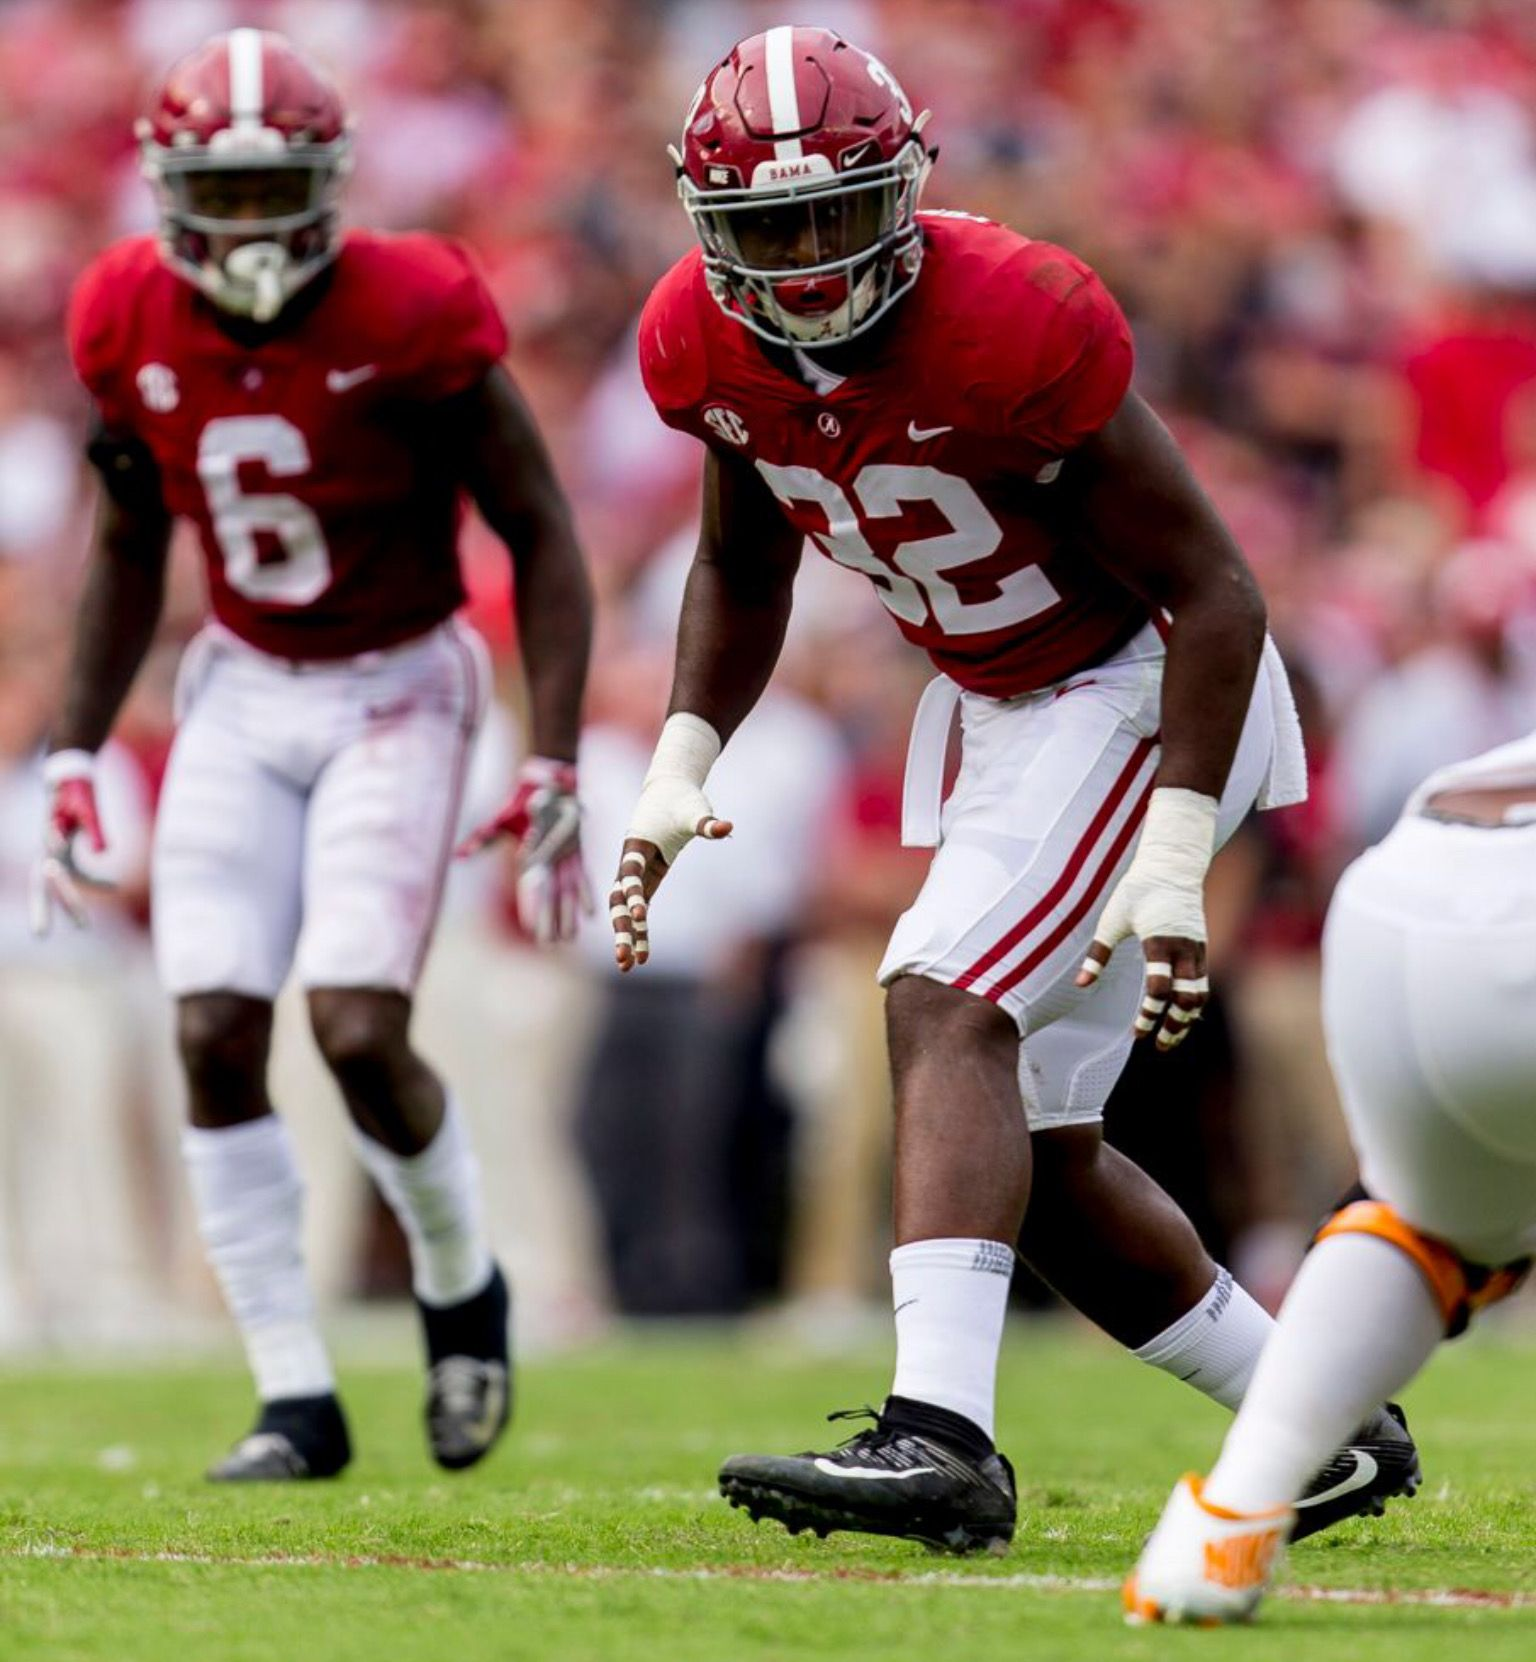 Alabama Linebacker Rashaan Evans 32 Lines Up On The Edge During The First Half Of The Alabama Vs Tennessee Sec Alabama Vs Alabama Crimson Tide Sec Football